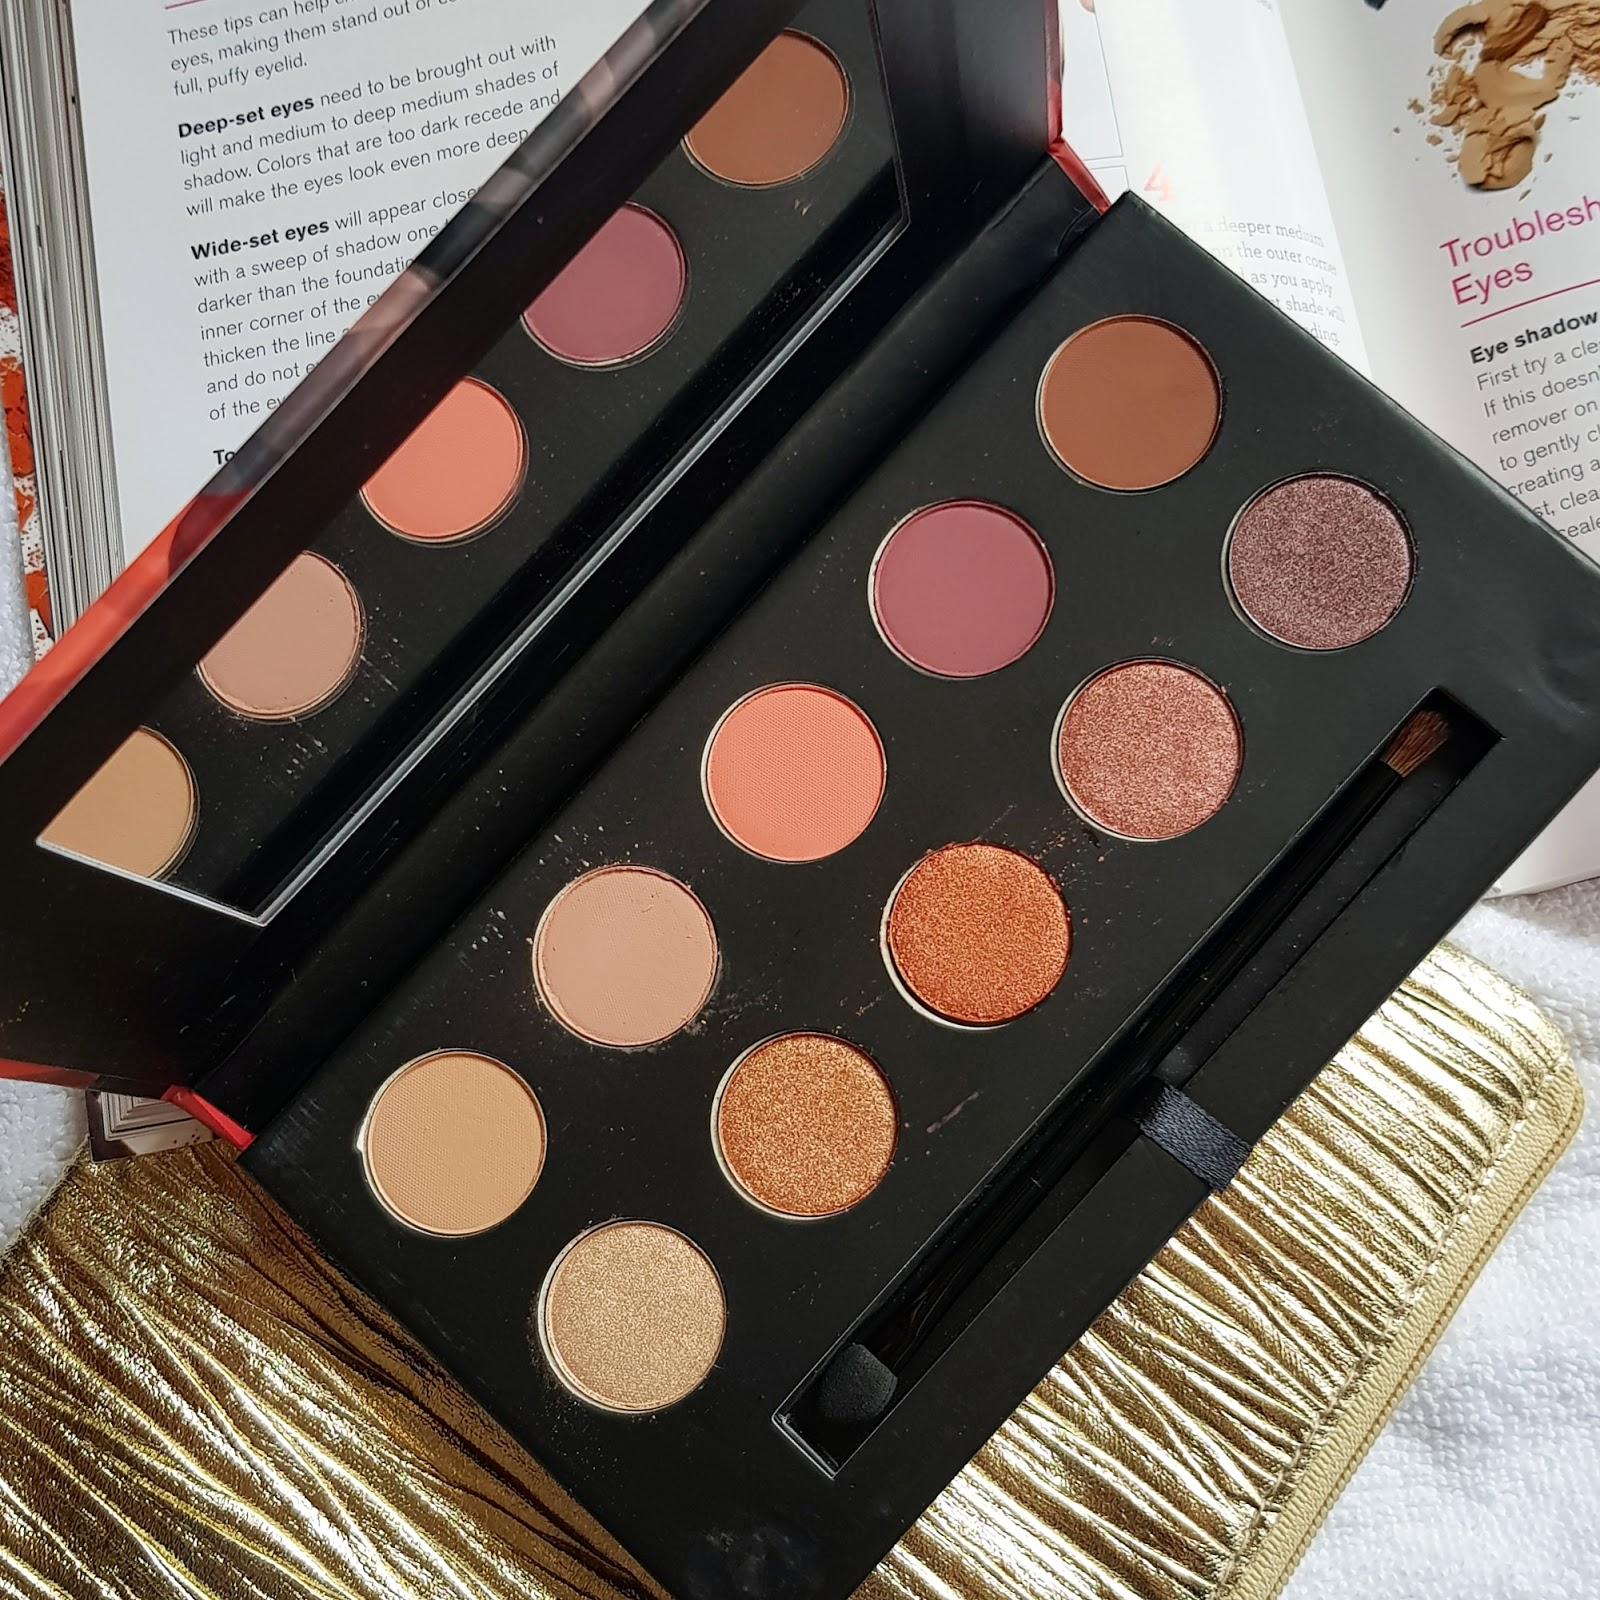 Ridzi Makeup Summer La Girl Pro Face Hd Matte Pressed Powder Medium Biege 609 Now Coming On To My Next Product Its A Beautiful Eyeshadow Palette In 01 Vogue The Other One Is 02 Firework